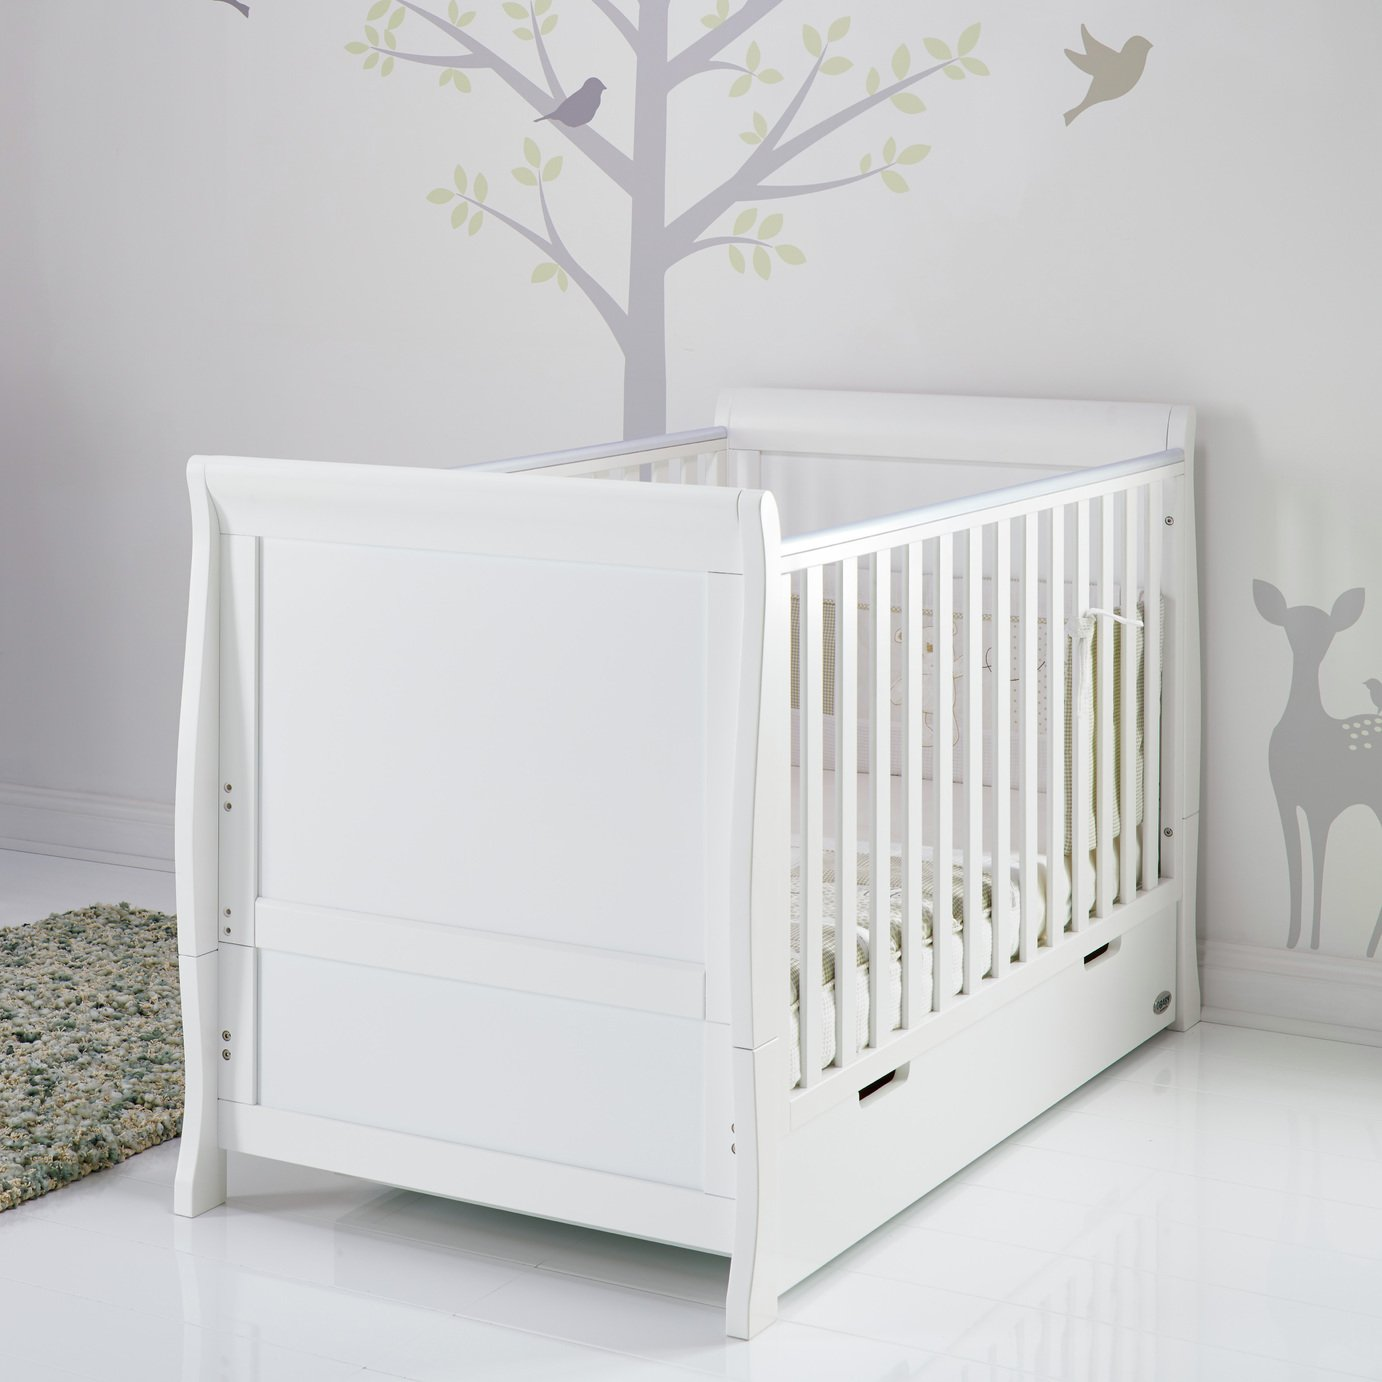 Image of Obaby Stamford Sleigh Cot Bed - White